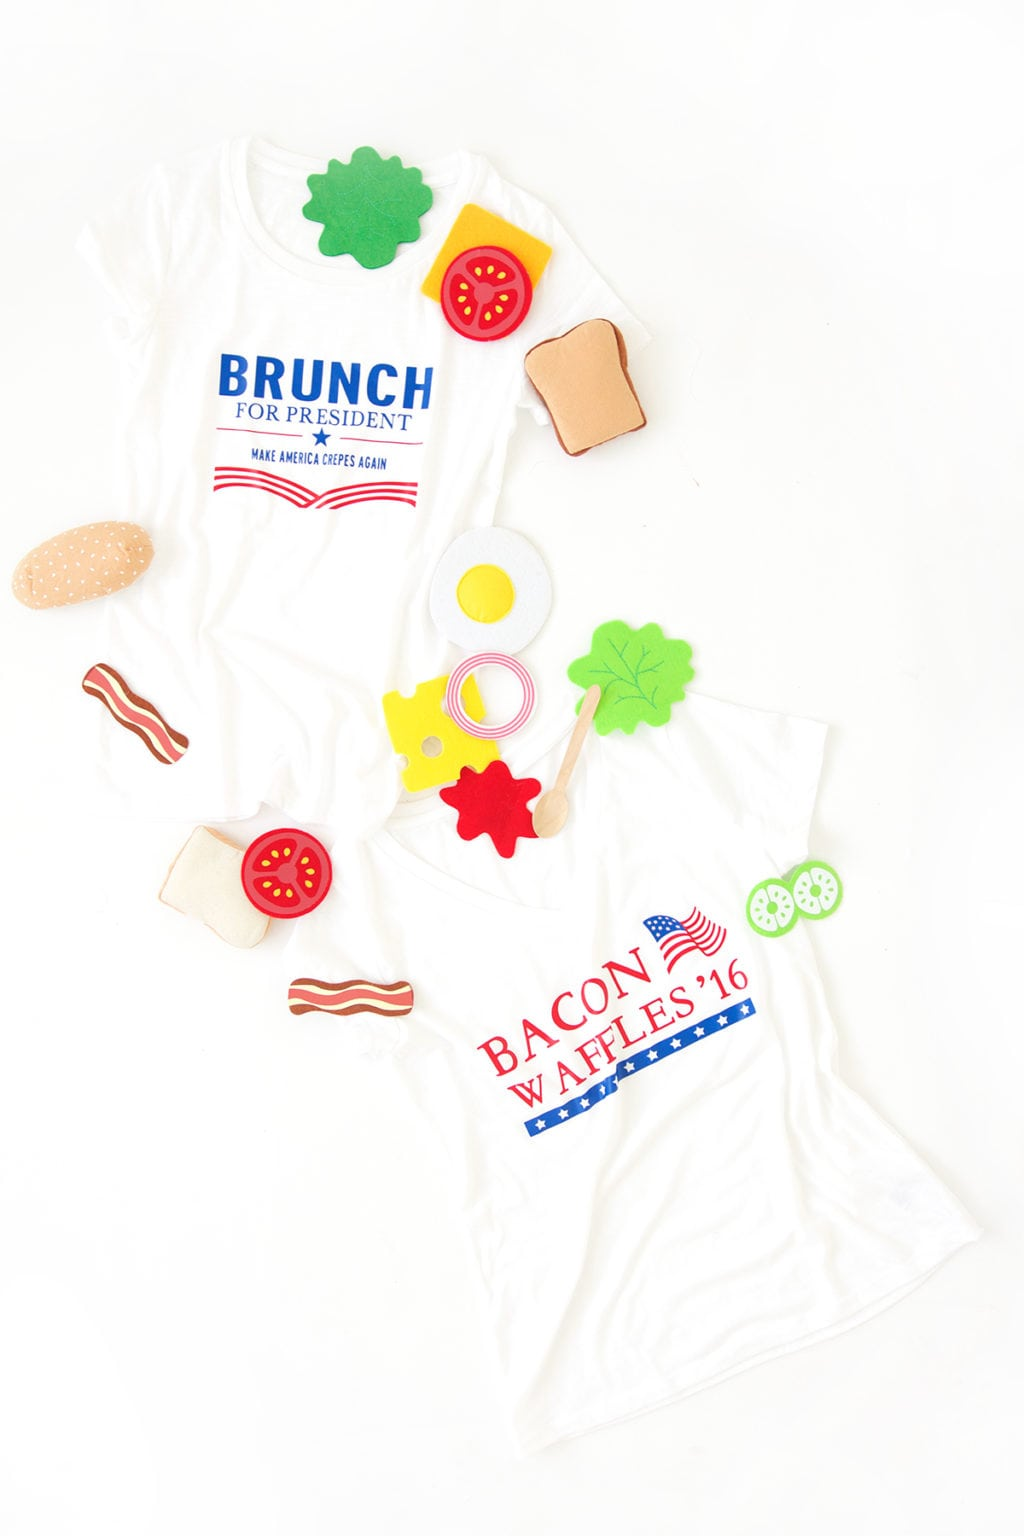 Elections are important but sometimes it's okay to take a step back and have a little fun. Create your own DIY funny election tee shirts with the Cricut Explore.